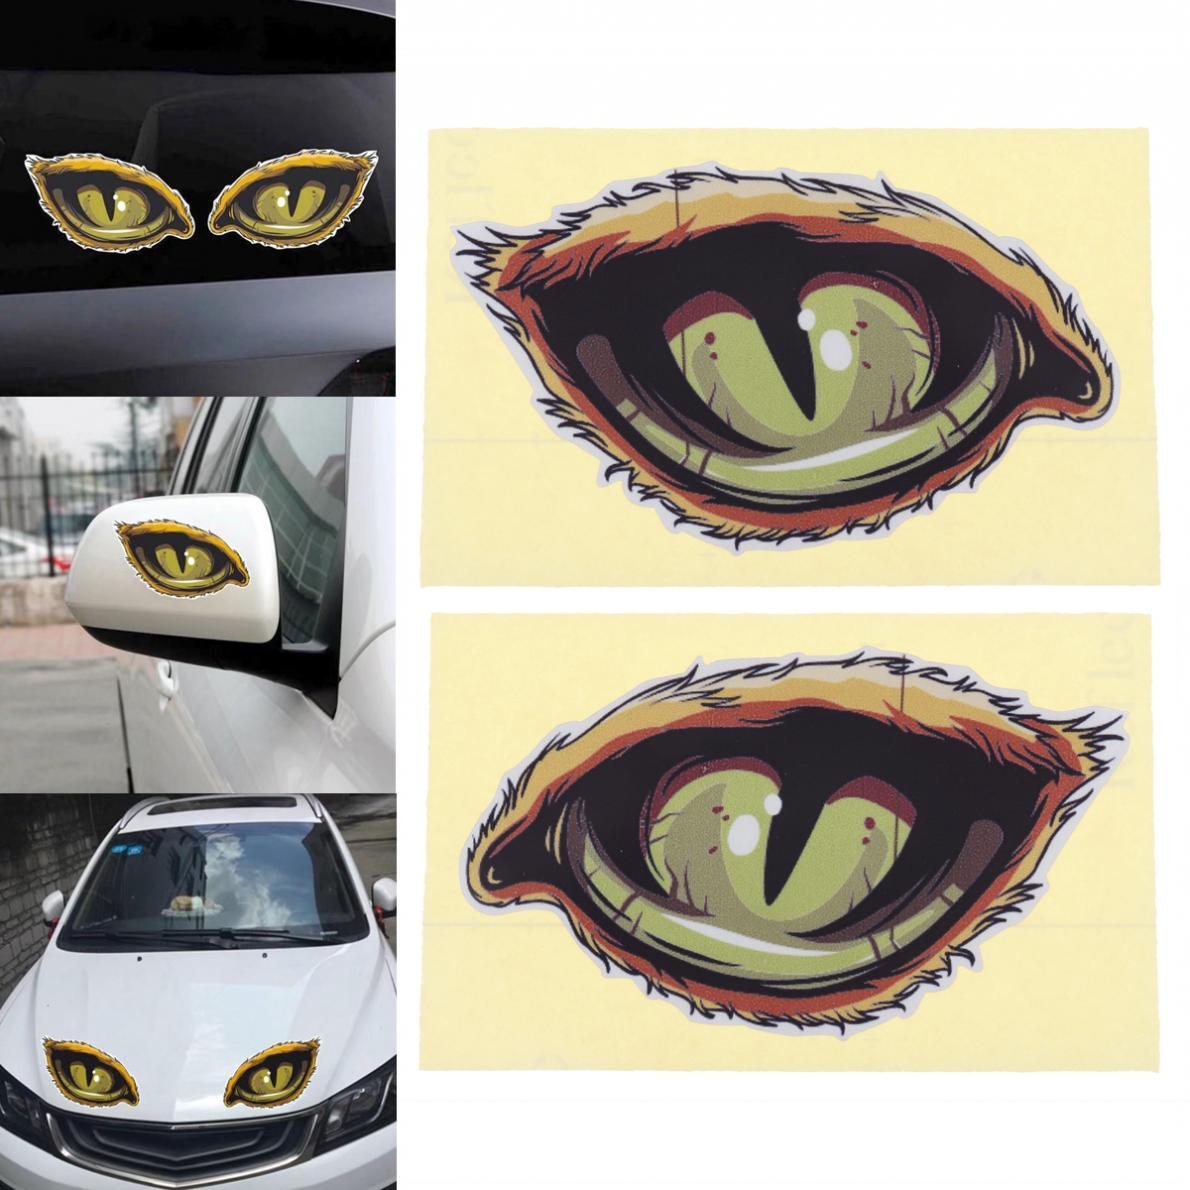 2pcs 12 x 7CM Waterproof 3D Eye Pattern Reflective Material Creative Funny Stereoscopic Car Sticker Accessories